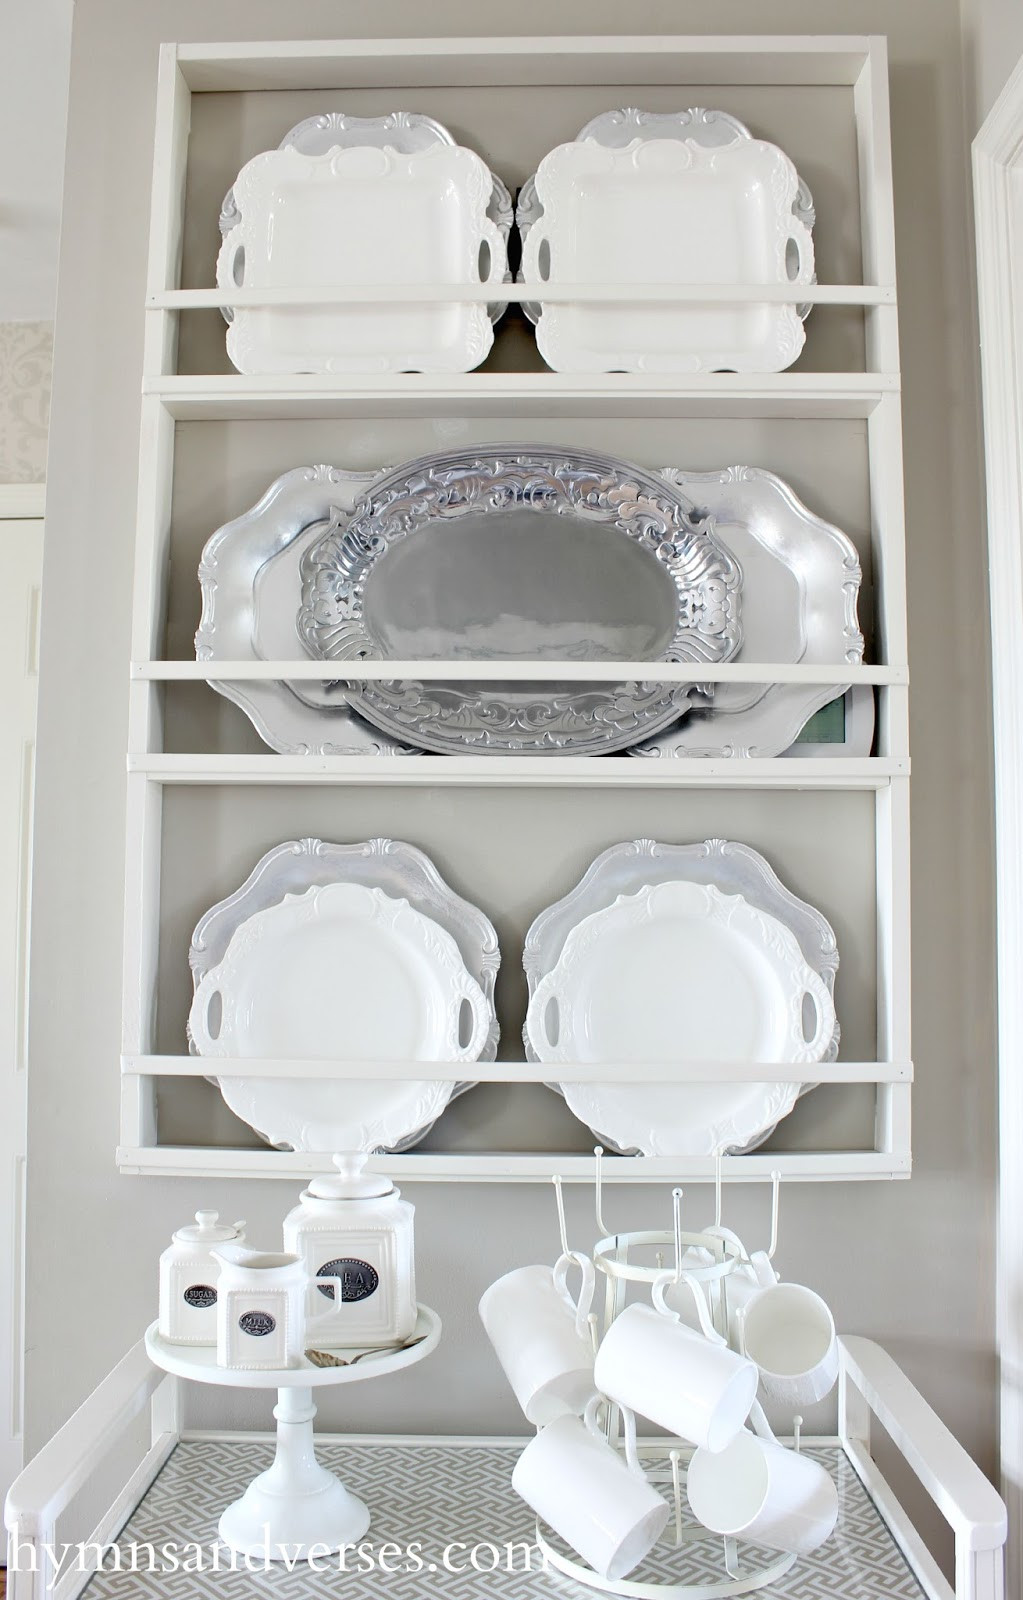 Best ideas about DIY Plate Racks . Save or Pin Build Your Own DIY Plate Rack Easy Plans Hymns and Verses Now.